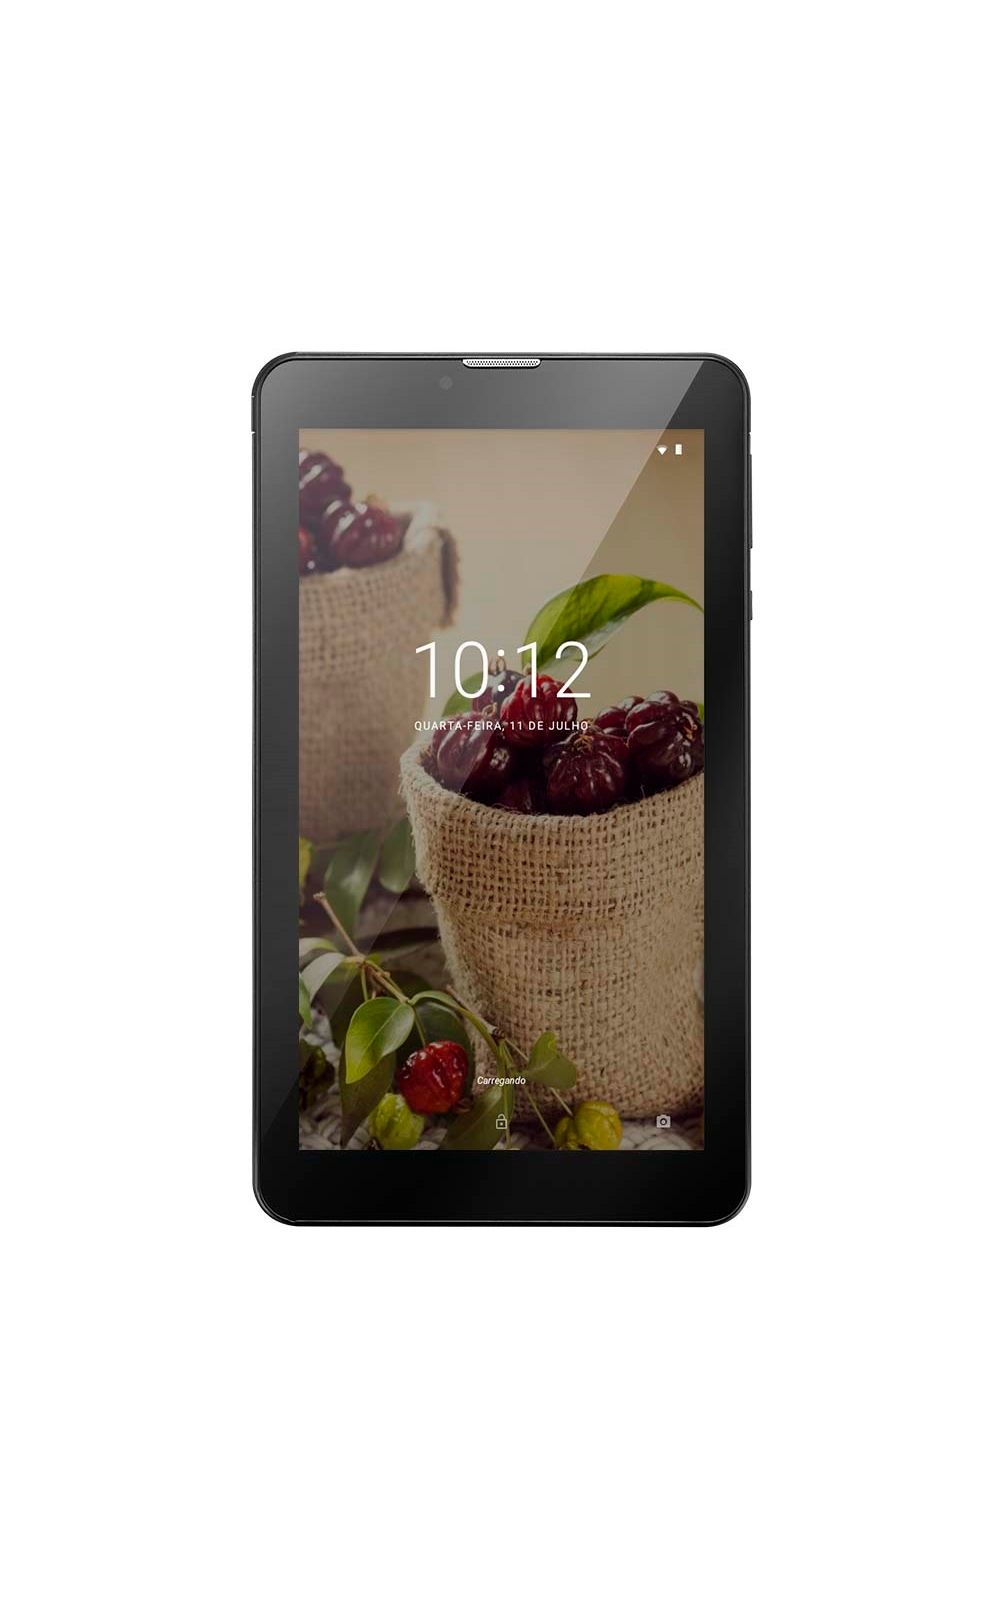 Tablet Multilaser M7 3G Plus Sênior 1GB 8GB Câmera 2.0 Mp+1.3 Mp Tela 7 Dual Chip Preto - NB294